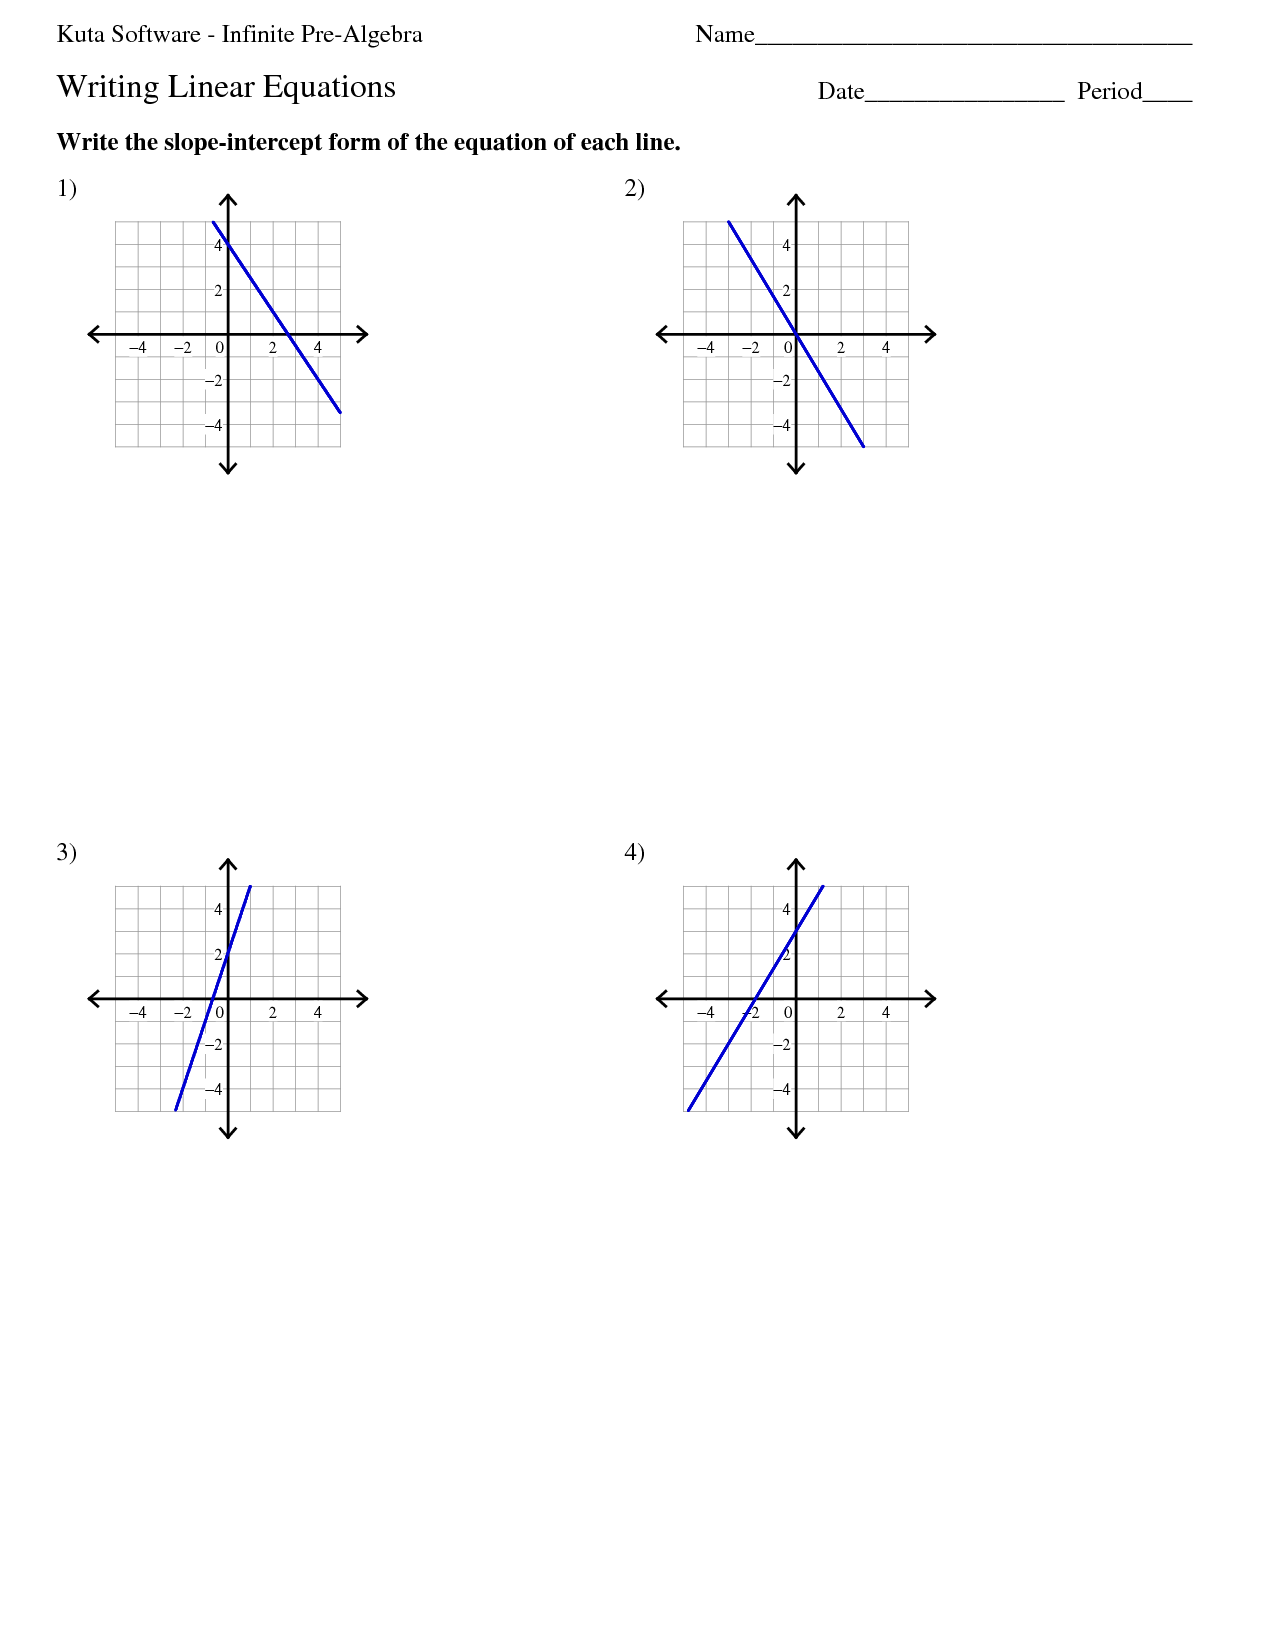 Kuta Worksheet Writing Linear Equations - Sewdarncute